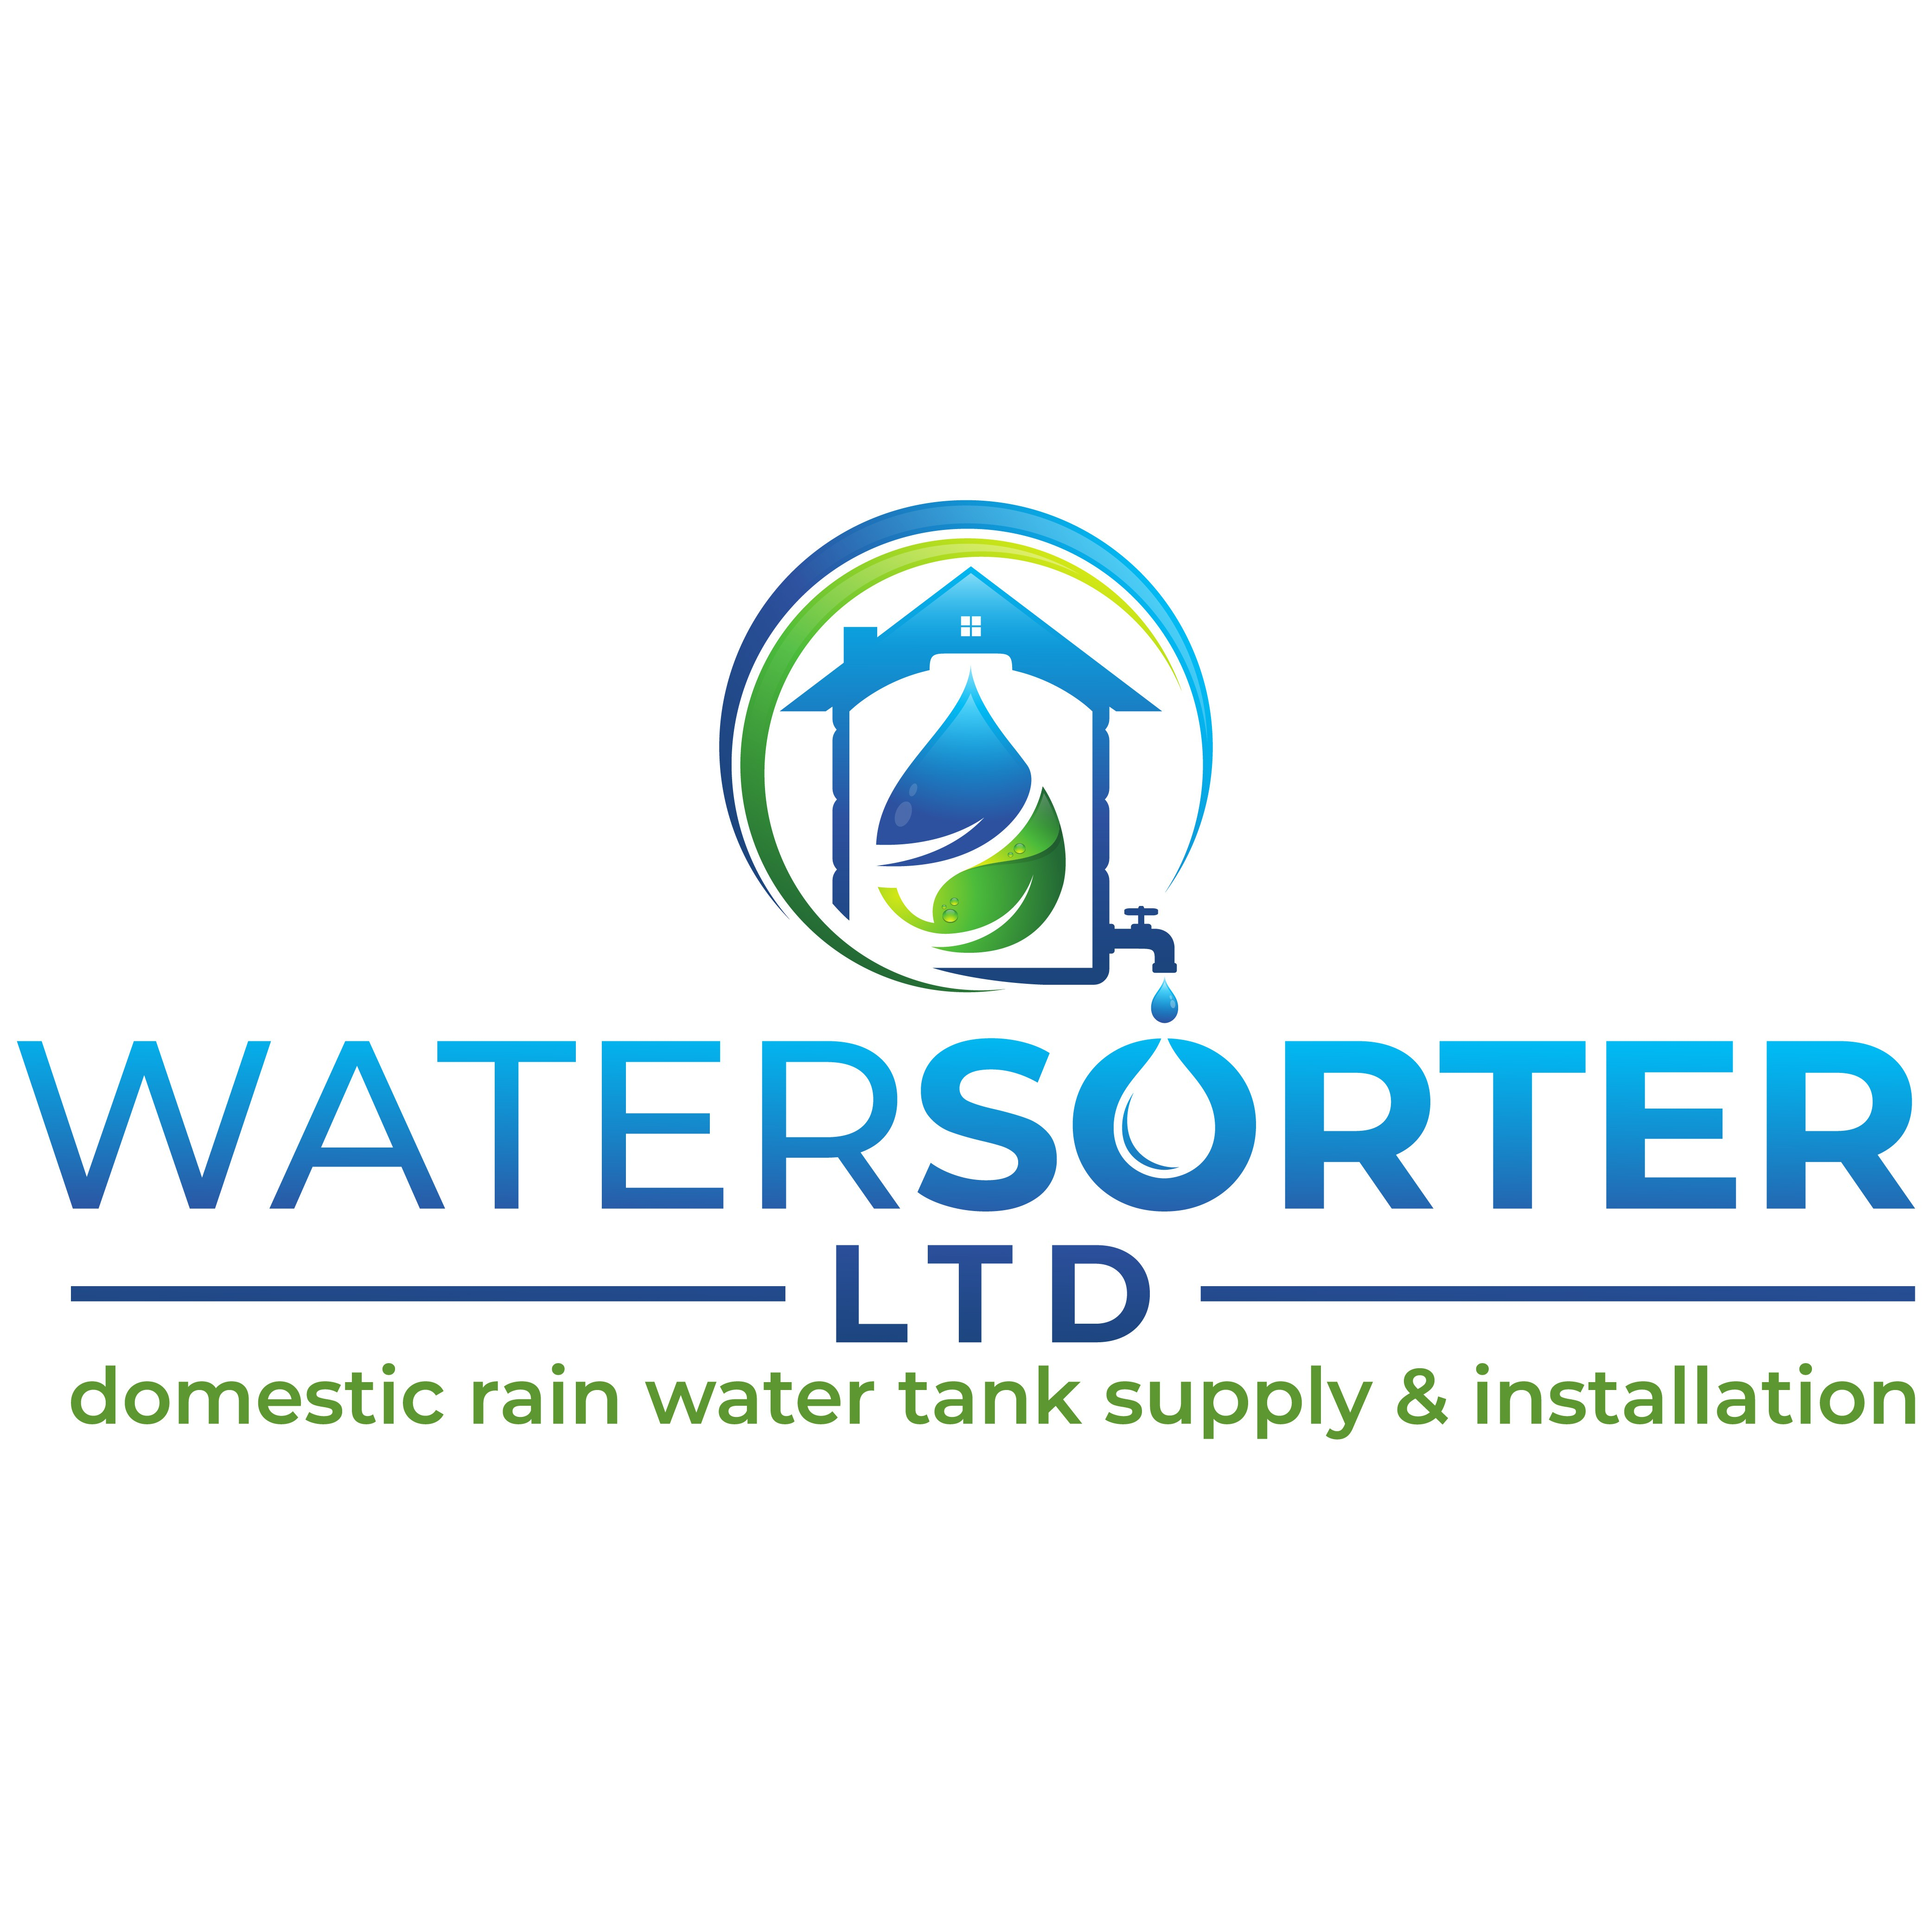 Design a catchy logo somehow detailing home rain water tank benefits.